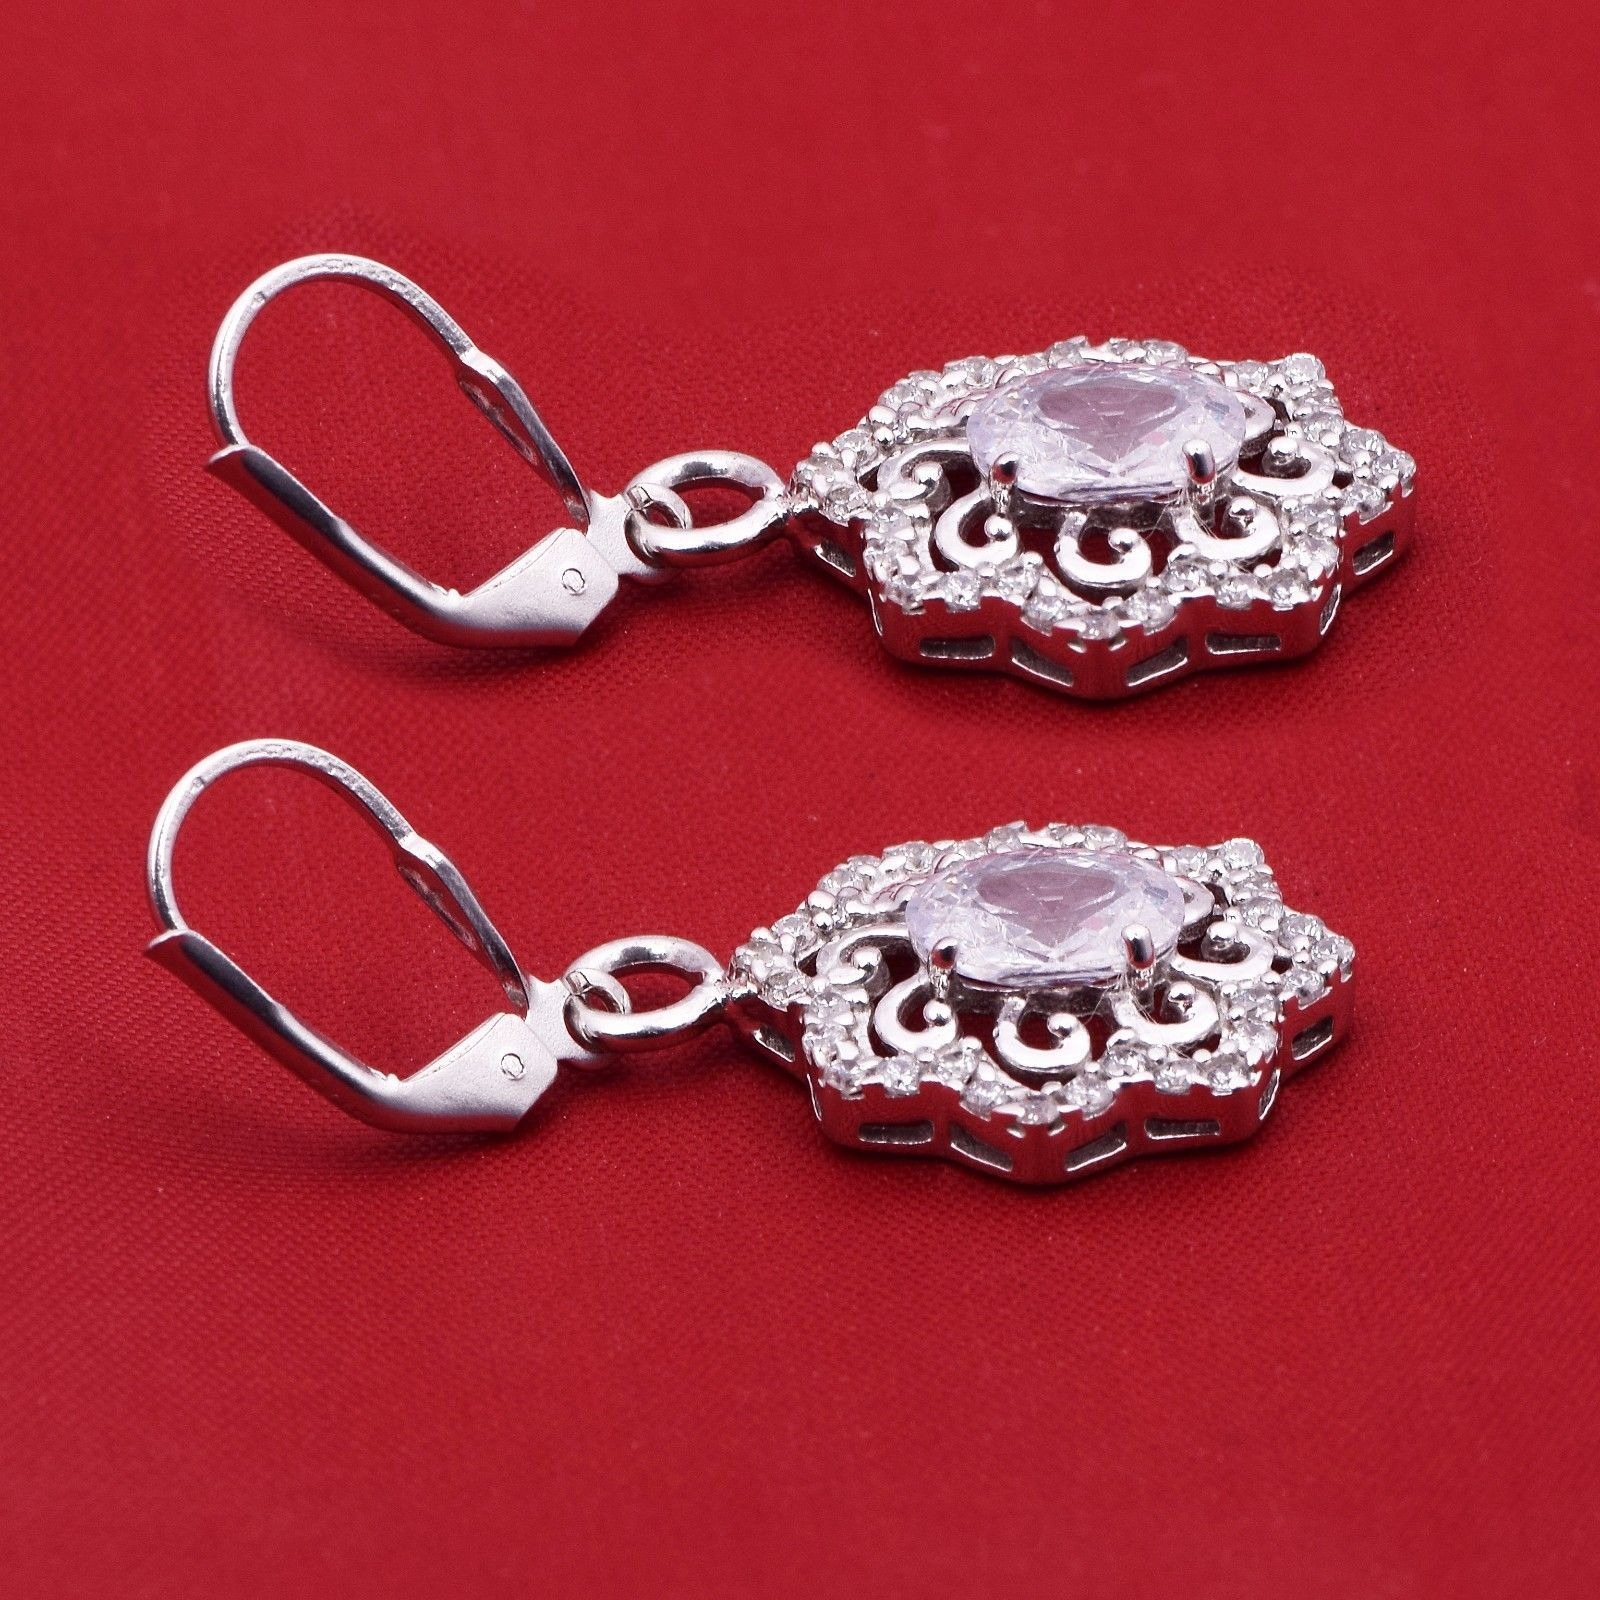 Latest Design-Cubic Zirconia 925 Sterling Silver Earring Shine Jewelry SHER0776